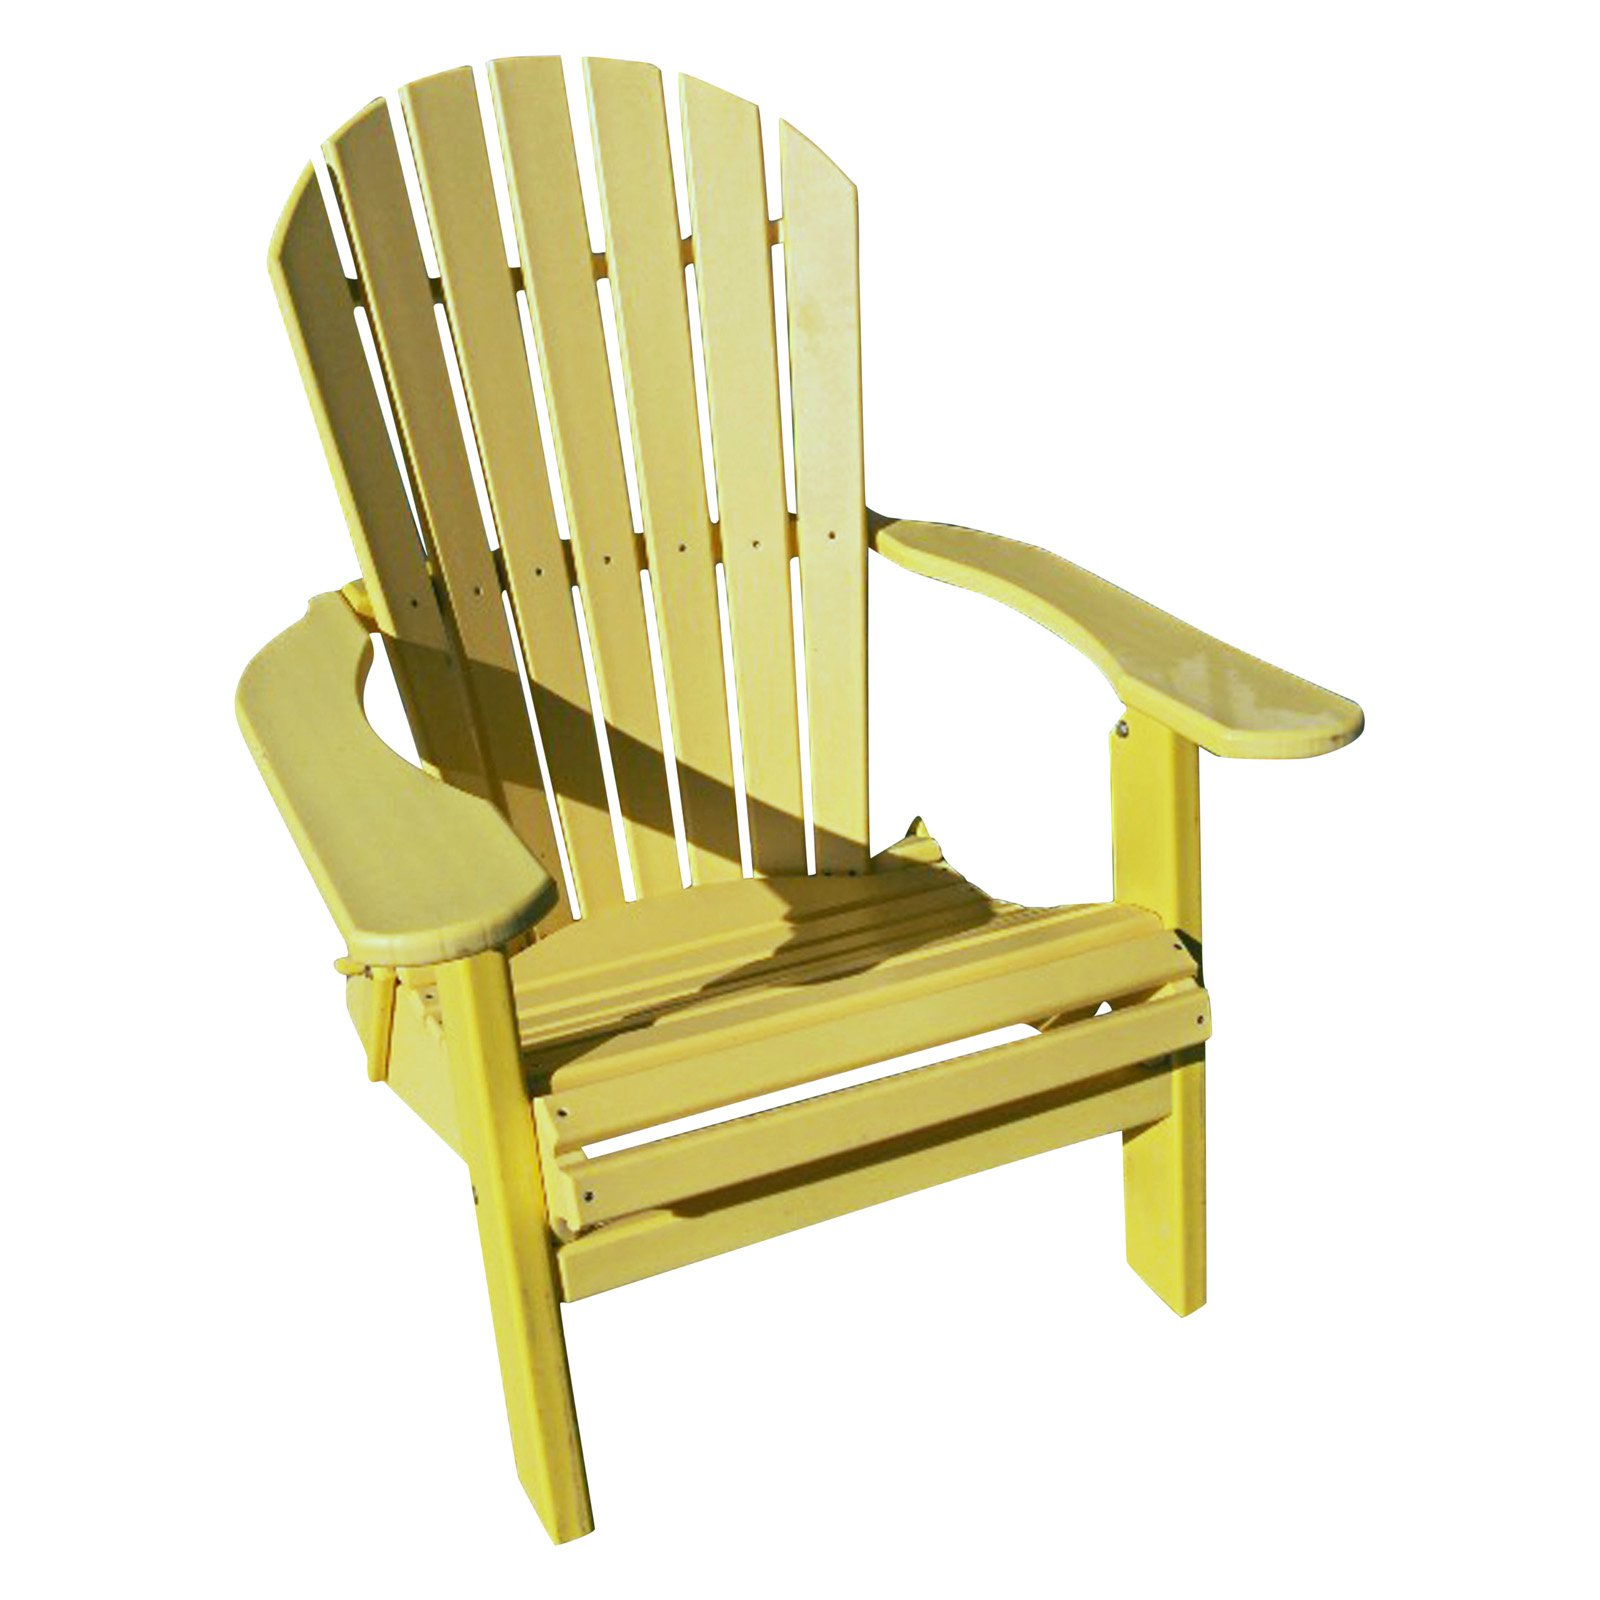 Product Image Phat Tommy Recycled Plastic Deluxe Folding Adirondack Chair